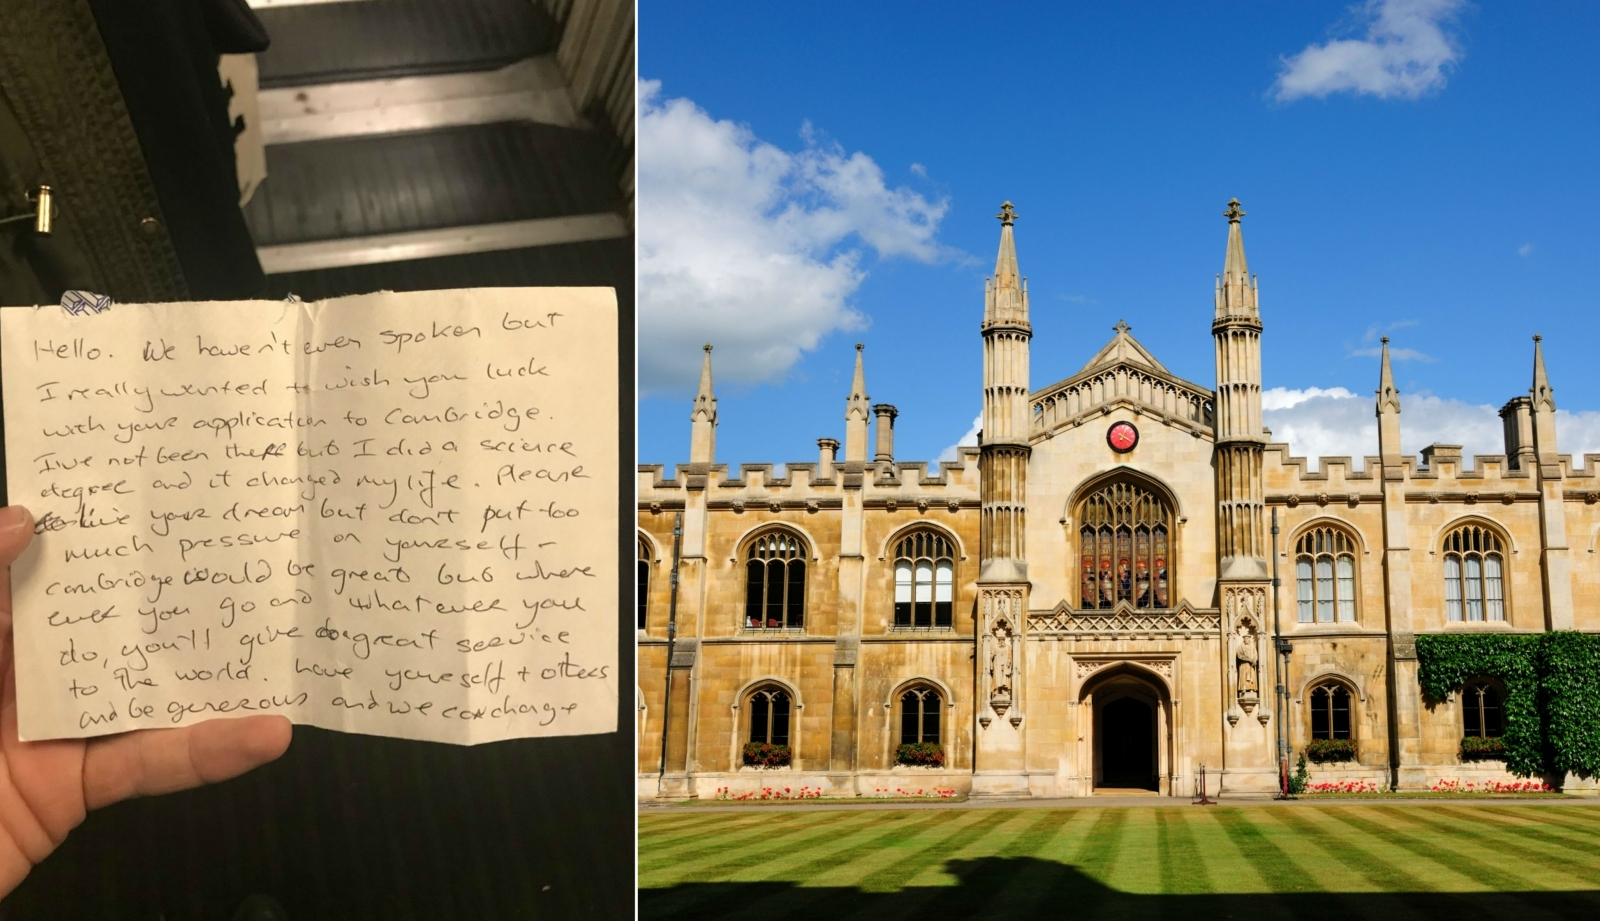 Stranger gives Cambridge Uni hopeful heart-warming letter with money on train: 'Live your dream'